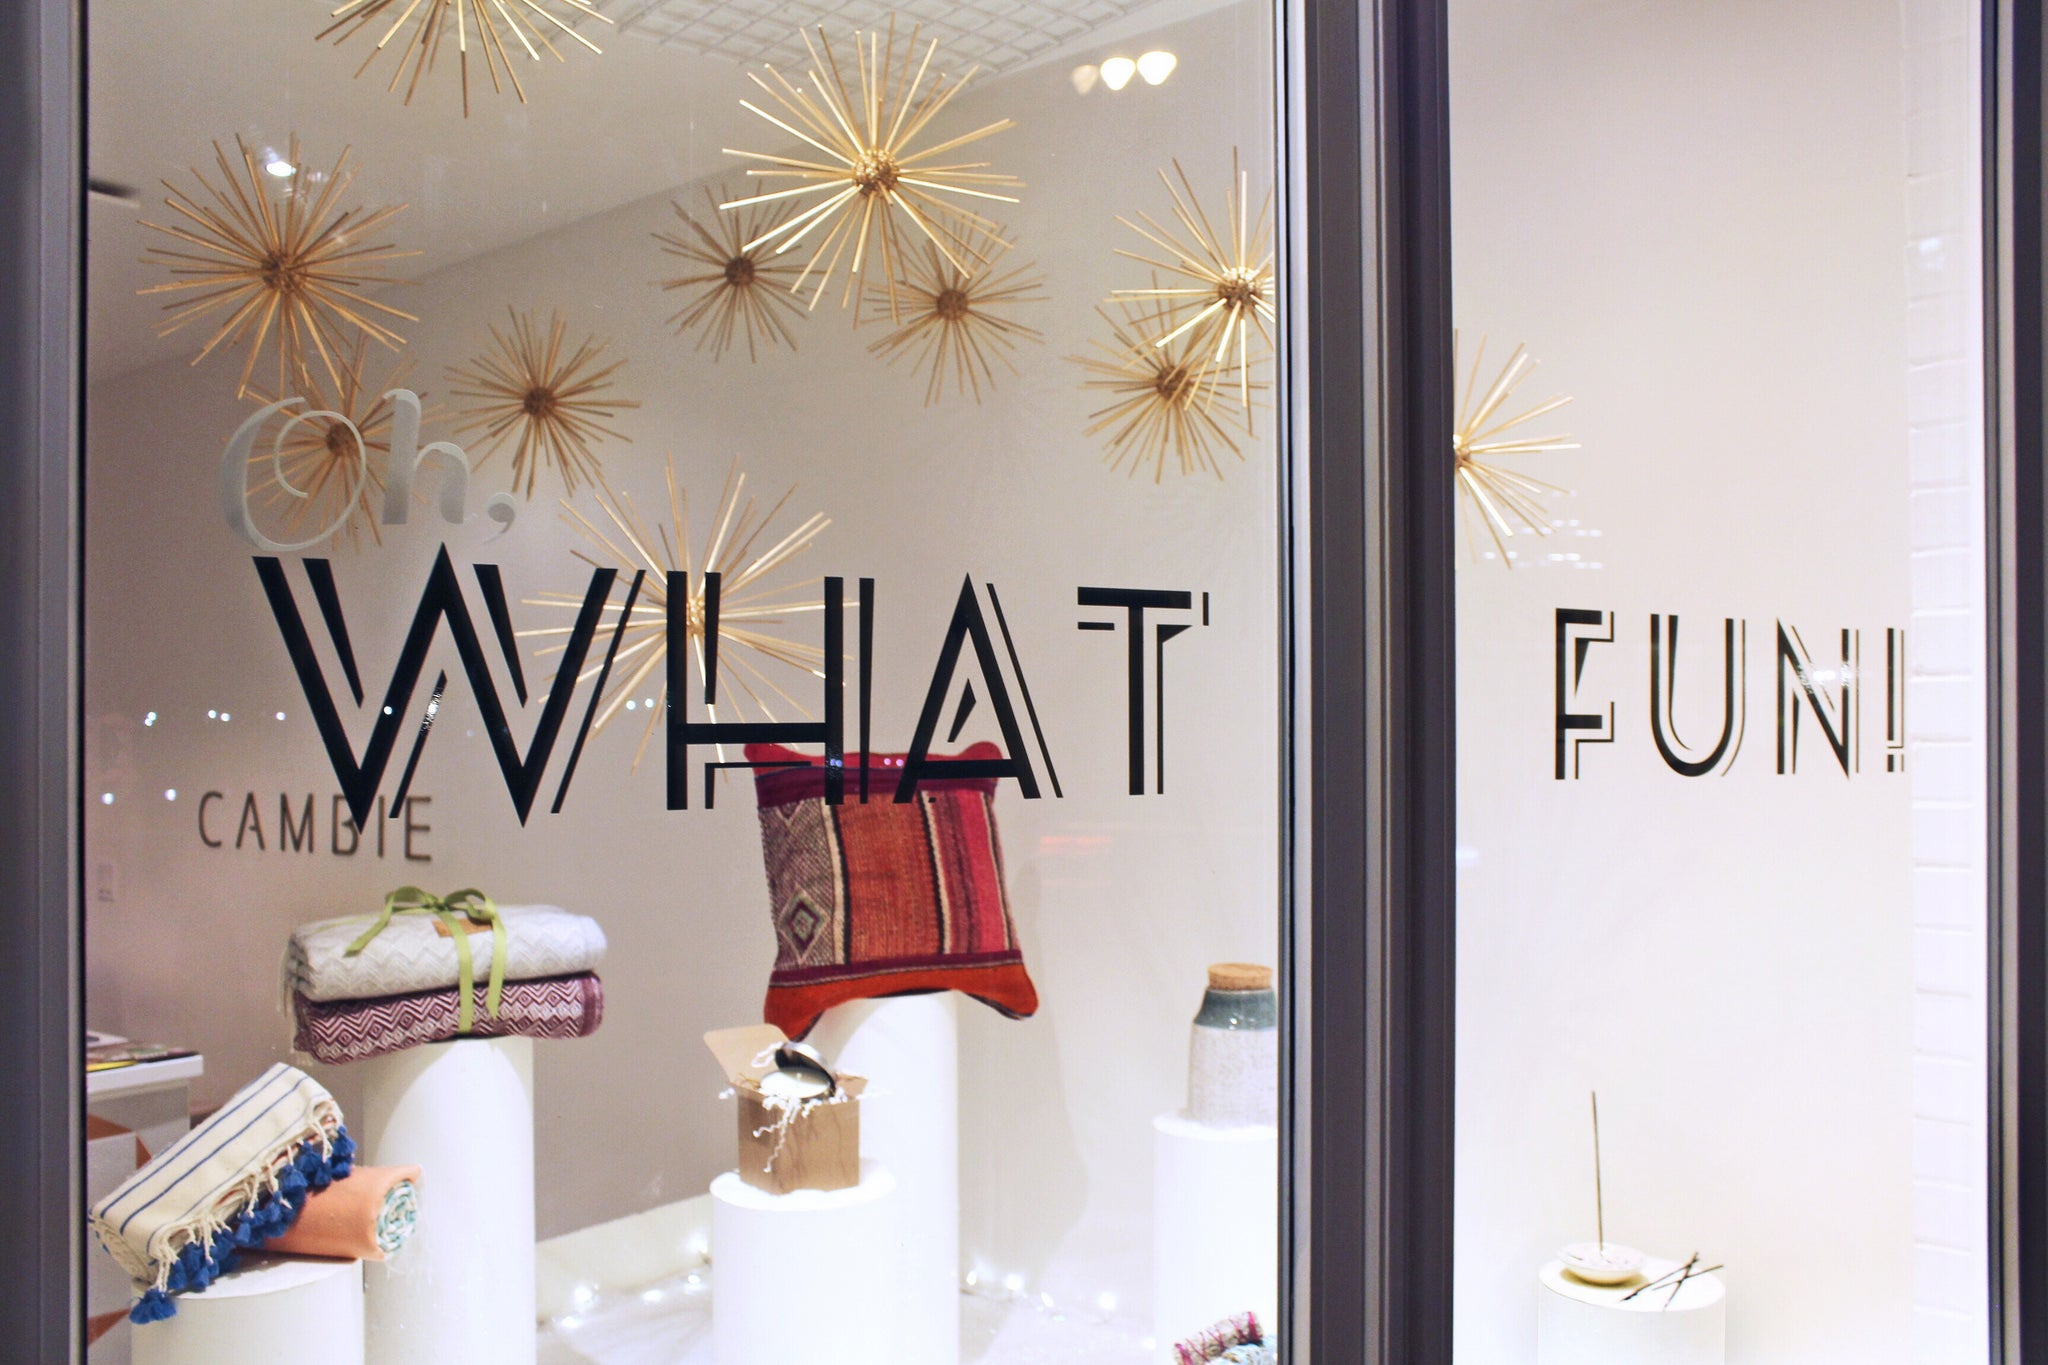 Cambie Design window display